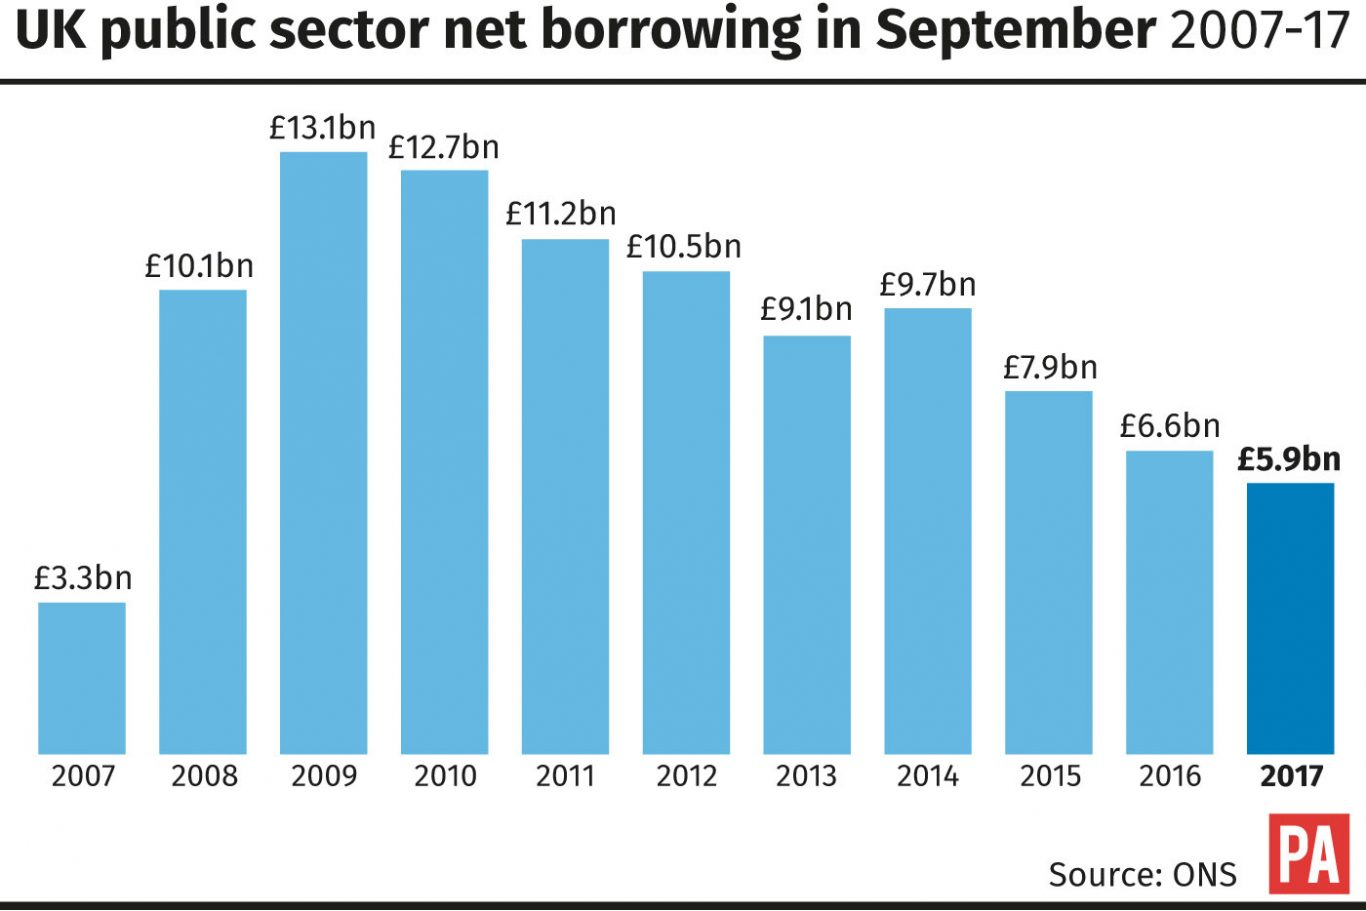 UK public sector net borrowing in September 2007-17